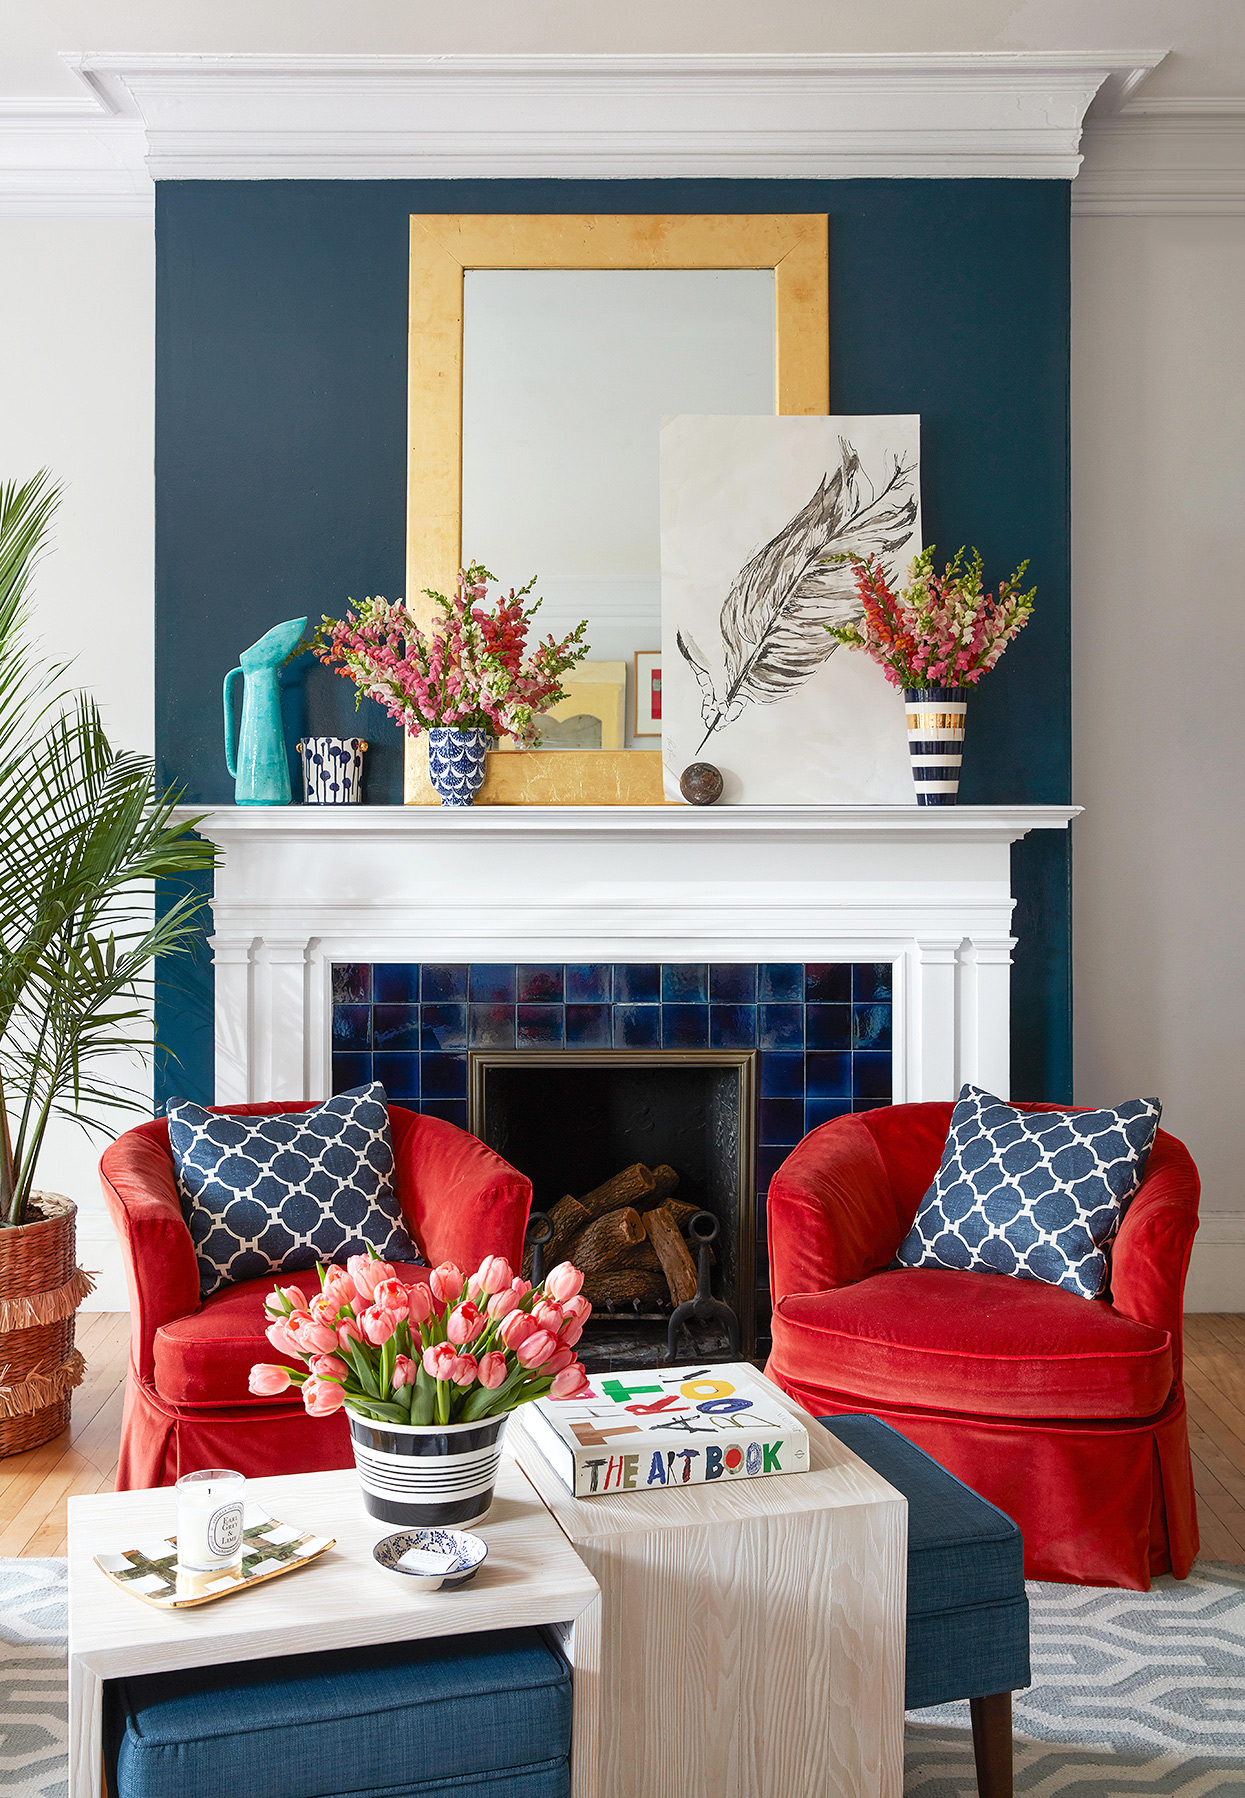 dark painted wall above fireplace with red and blue décor